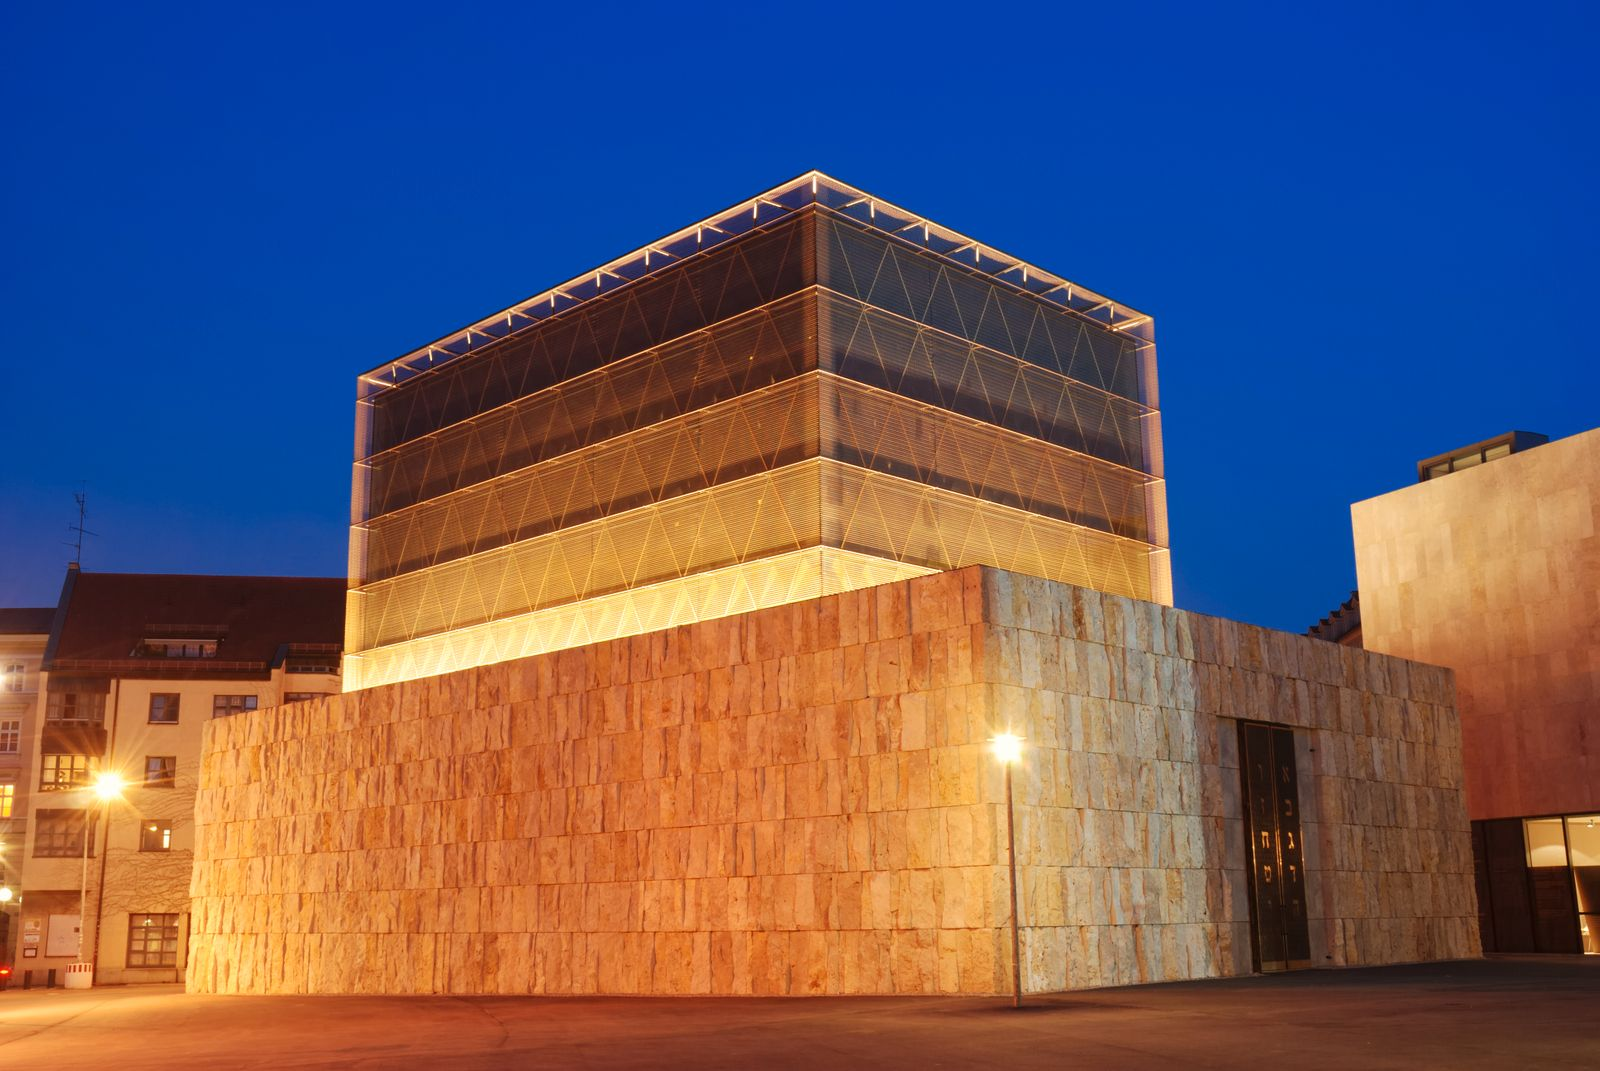 synagogue in Munich at night